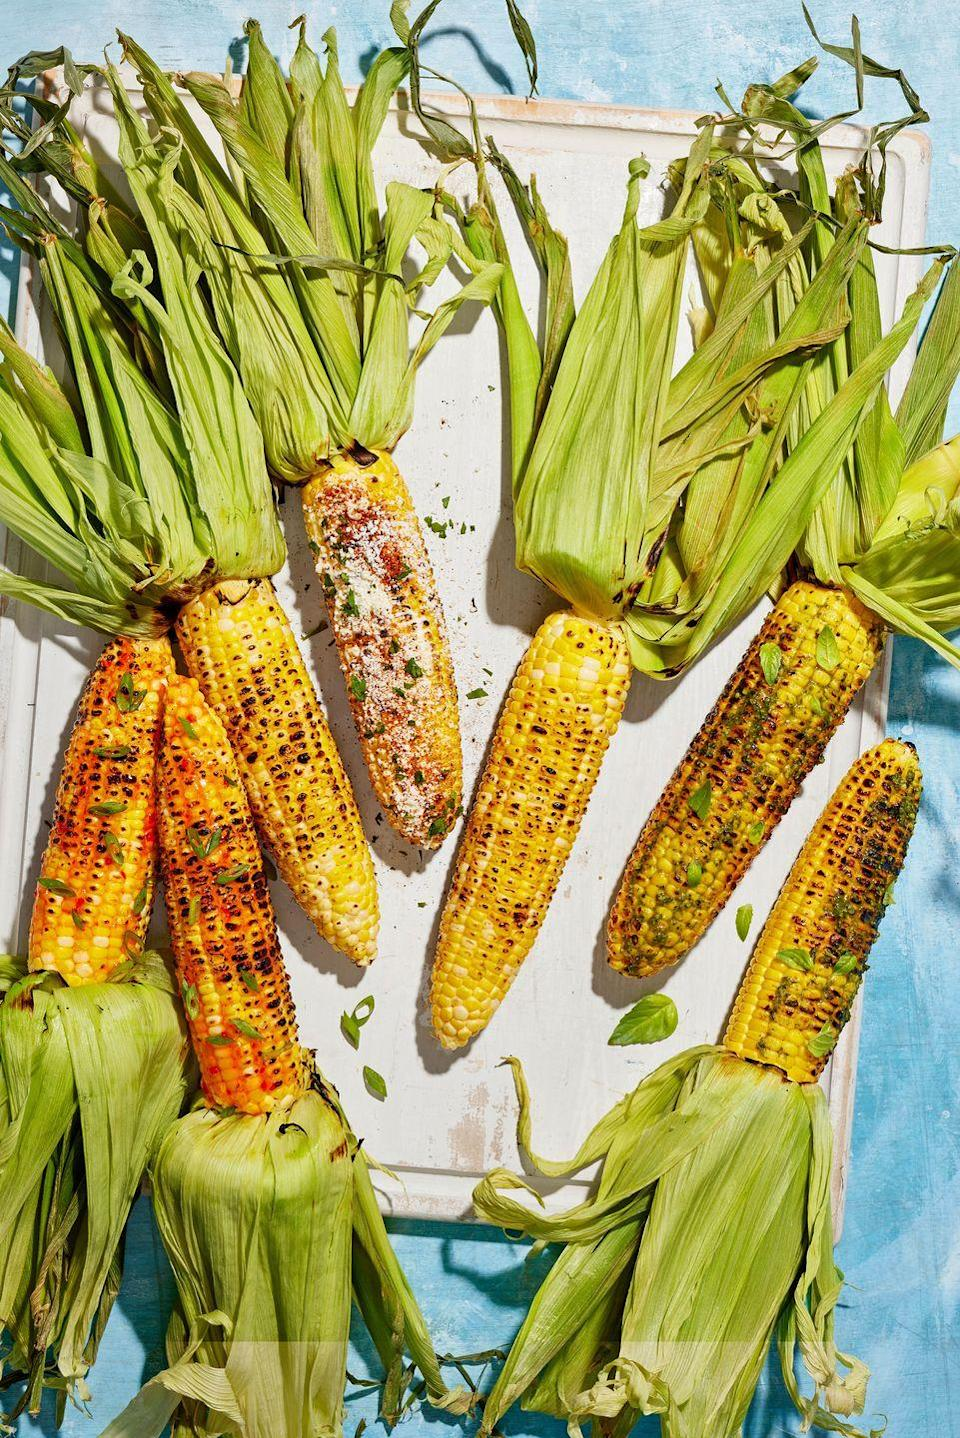 """<p>Corn on the cob hot off the grill is a guaranteed summer delight. But when dressed up, this sweet roasted veggie tastes even better. </p><p><strong><a href=""""https://www.countryliving.com/food-drinks/a36741693/grilled-corn-with-red-pepper-jelly-glaze-recipe/"""" rel=""""nofollow noopener"""" target=""""_blank"""" data-ylk=""""slk:Get the recipe for Grilled Corn with Red Pepper Jelly Glaze"""" class=""""link rapid-noclick-resp"""">Get the recipe for Grilled Corn with Red Pepper Jelly Glaze</a>.</strong></p><p><strong><strong><a href=""""https://www.countryliving.com/food-drinks/a36742046/grilled-corn-with-mexican-street-style-topping-recipe/"""" rel=""""nofollow noopener"""" target=""""_blank"""" data-ylk=""""slk:Get the recipe for Grilled Corn with Mexican &quot;Street Style&quot; Topping"""" class=""""link rapid-noclick-resp"""">Get the recipe for Grilled Corn with Mexican """"Street Style"""" Topping</a>.</strong><br></strong></p><p><strong><a href=""""https://www.countryliving.com/food-drinks/a36742152/grilled-corn-with-pesto-and-basil-schmear-recipe/"""" rel=""""nofollow noopener"""" target=""""_blank"""" data-ylk=""""slk:Get the recipe for Grilled Corn with Pesto and Basil Schmear"""" class=""""link rapid-noclick-resp""""><strong>Get the recipe for Grilled Corn with Pesto and Basil Schmear</strong></a>.<br></strong></p>"""